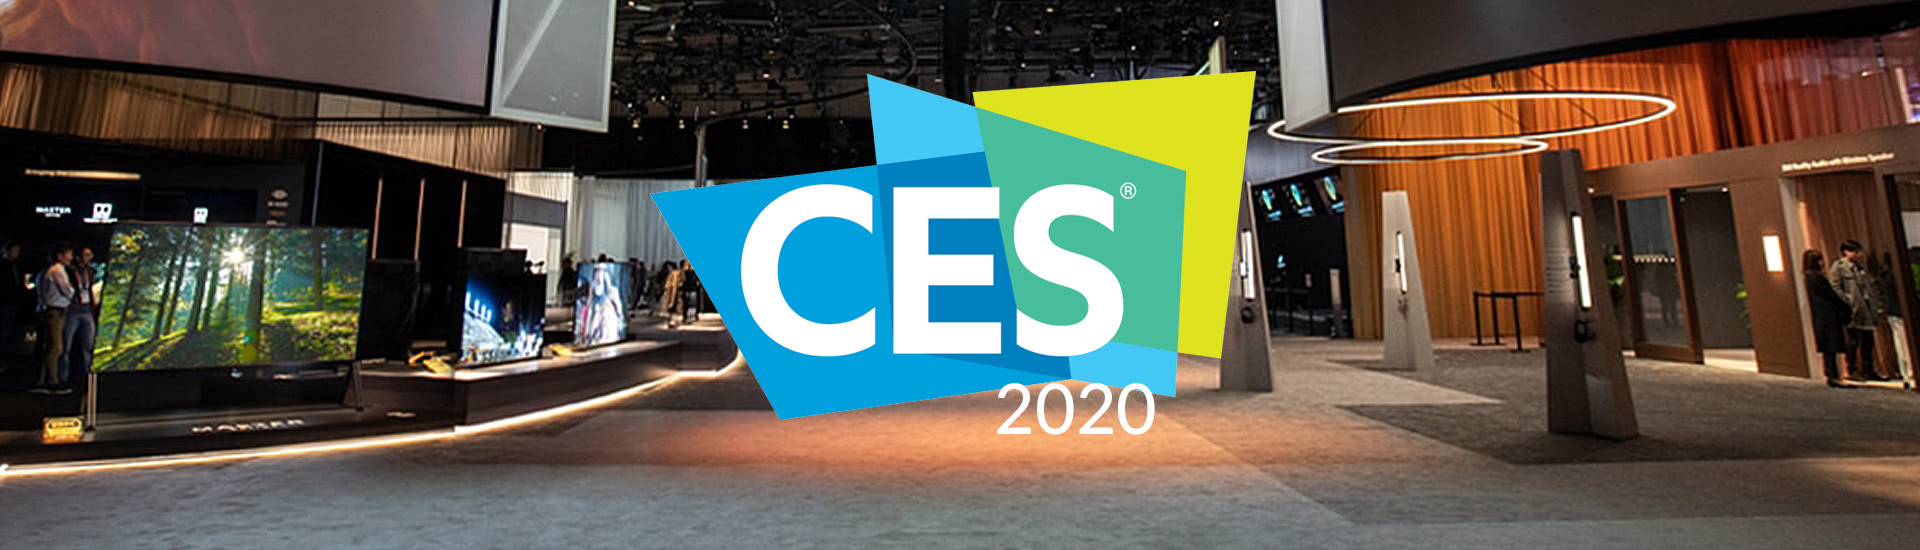 CES 2020 Highlights: The Latest In Tech